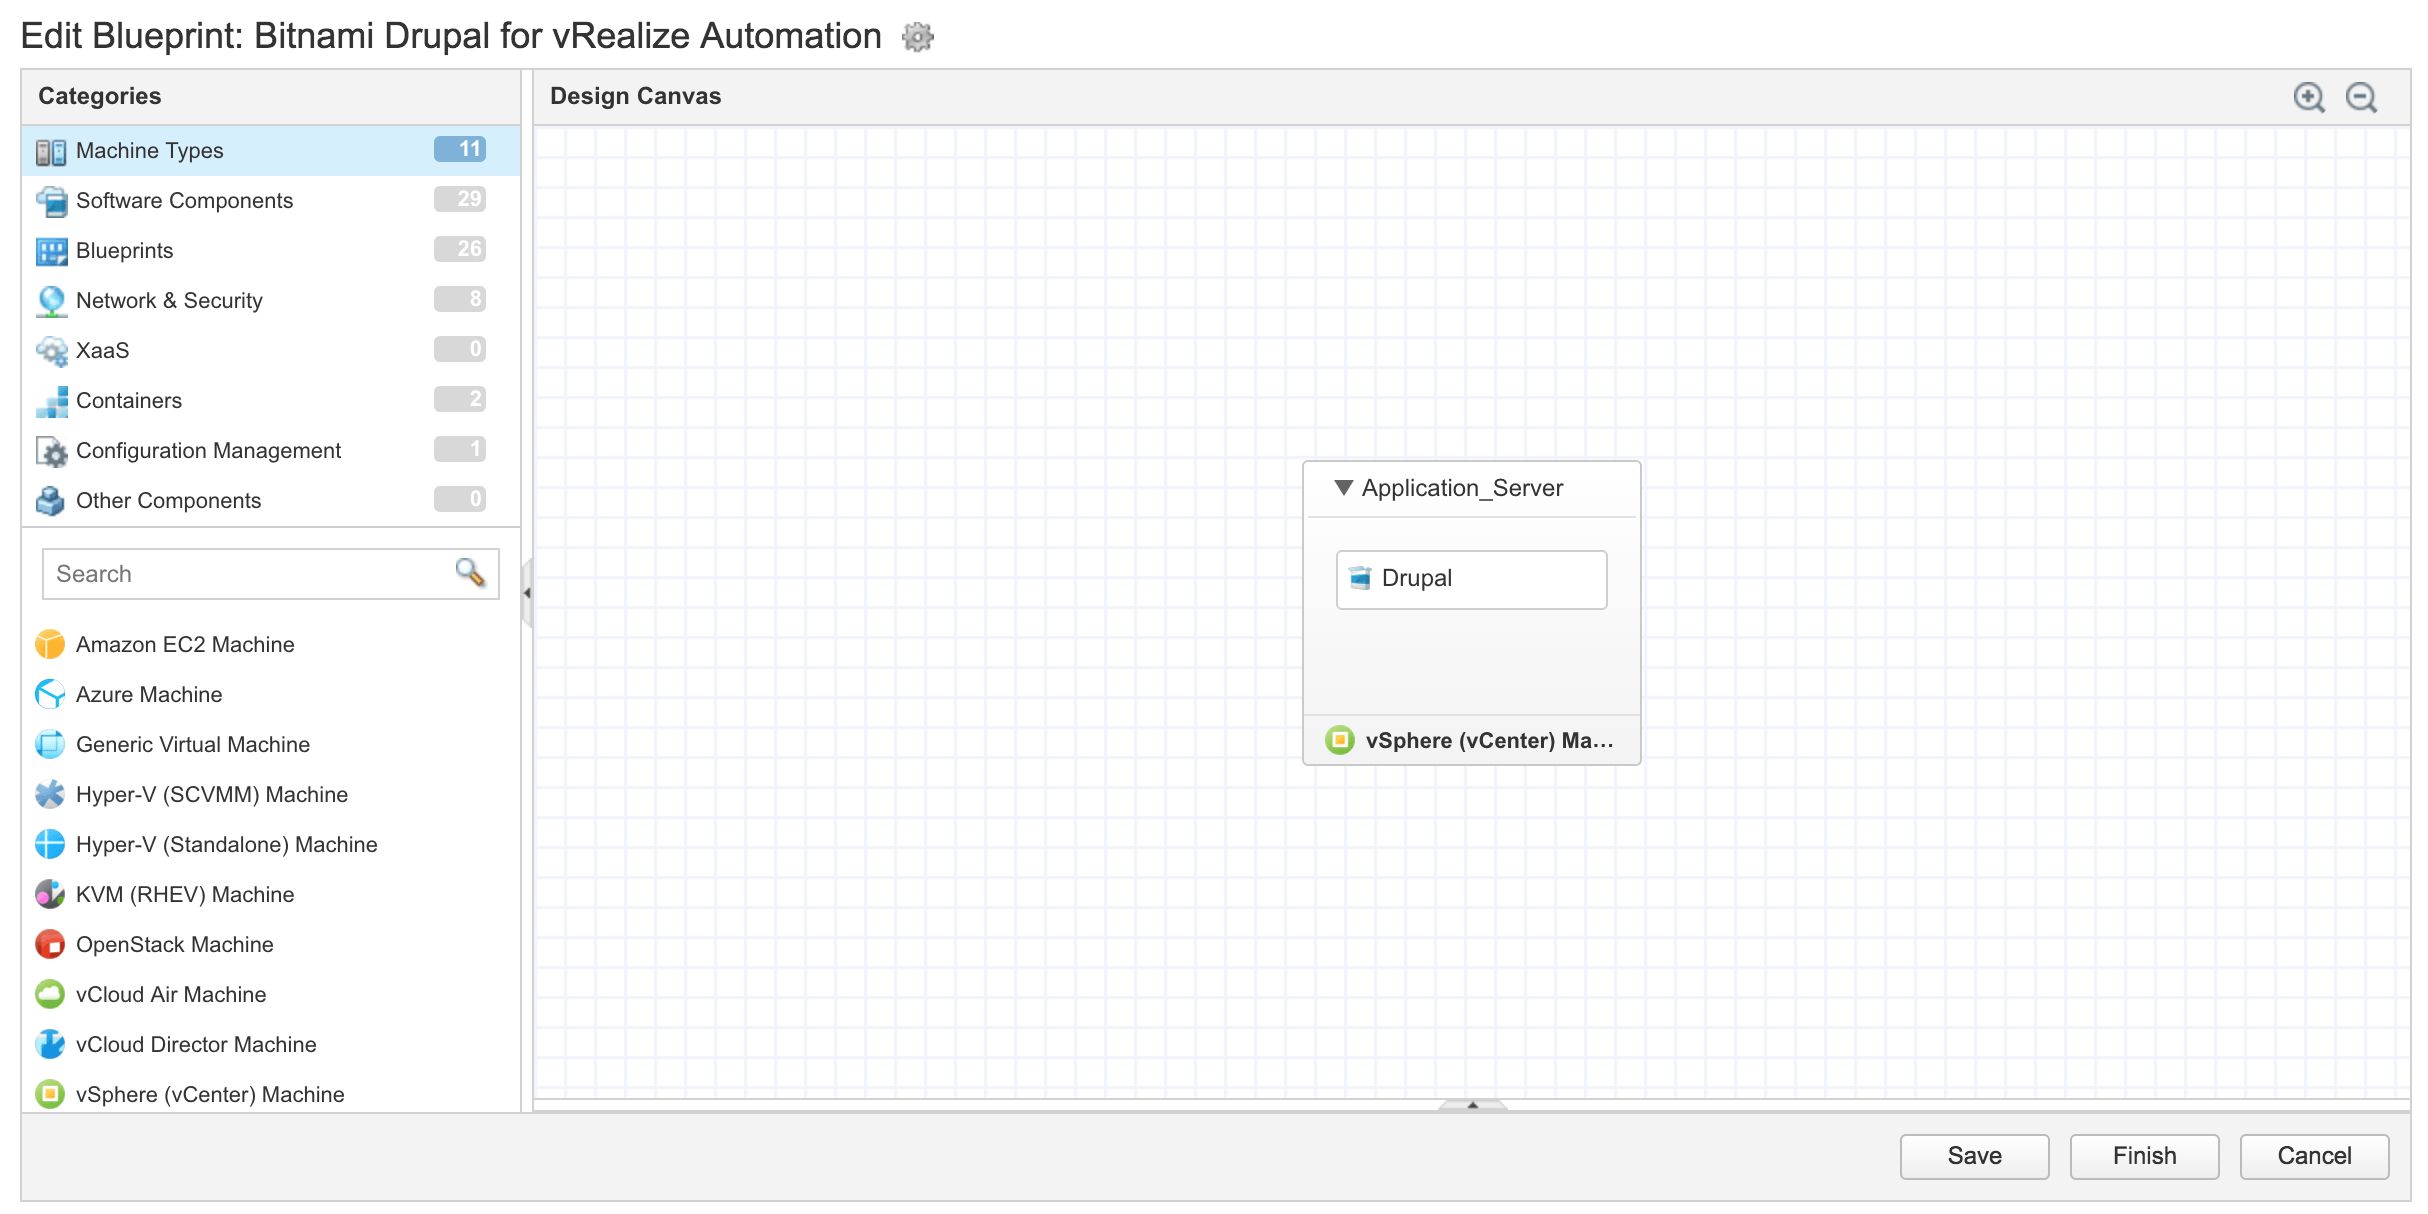 Get started with bitnami blueprints on vmware vrealize automation design canvas view malvernweather